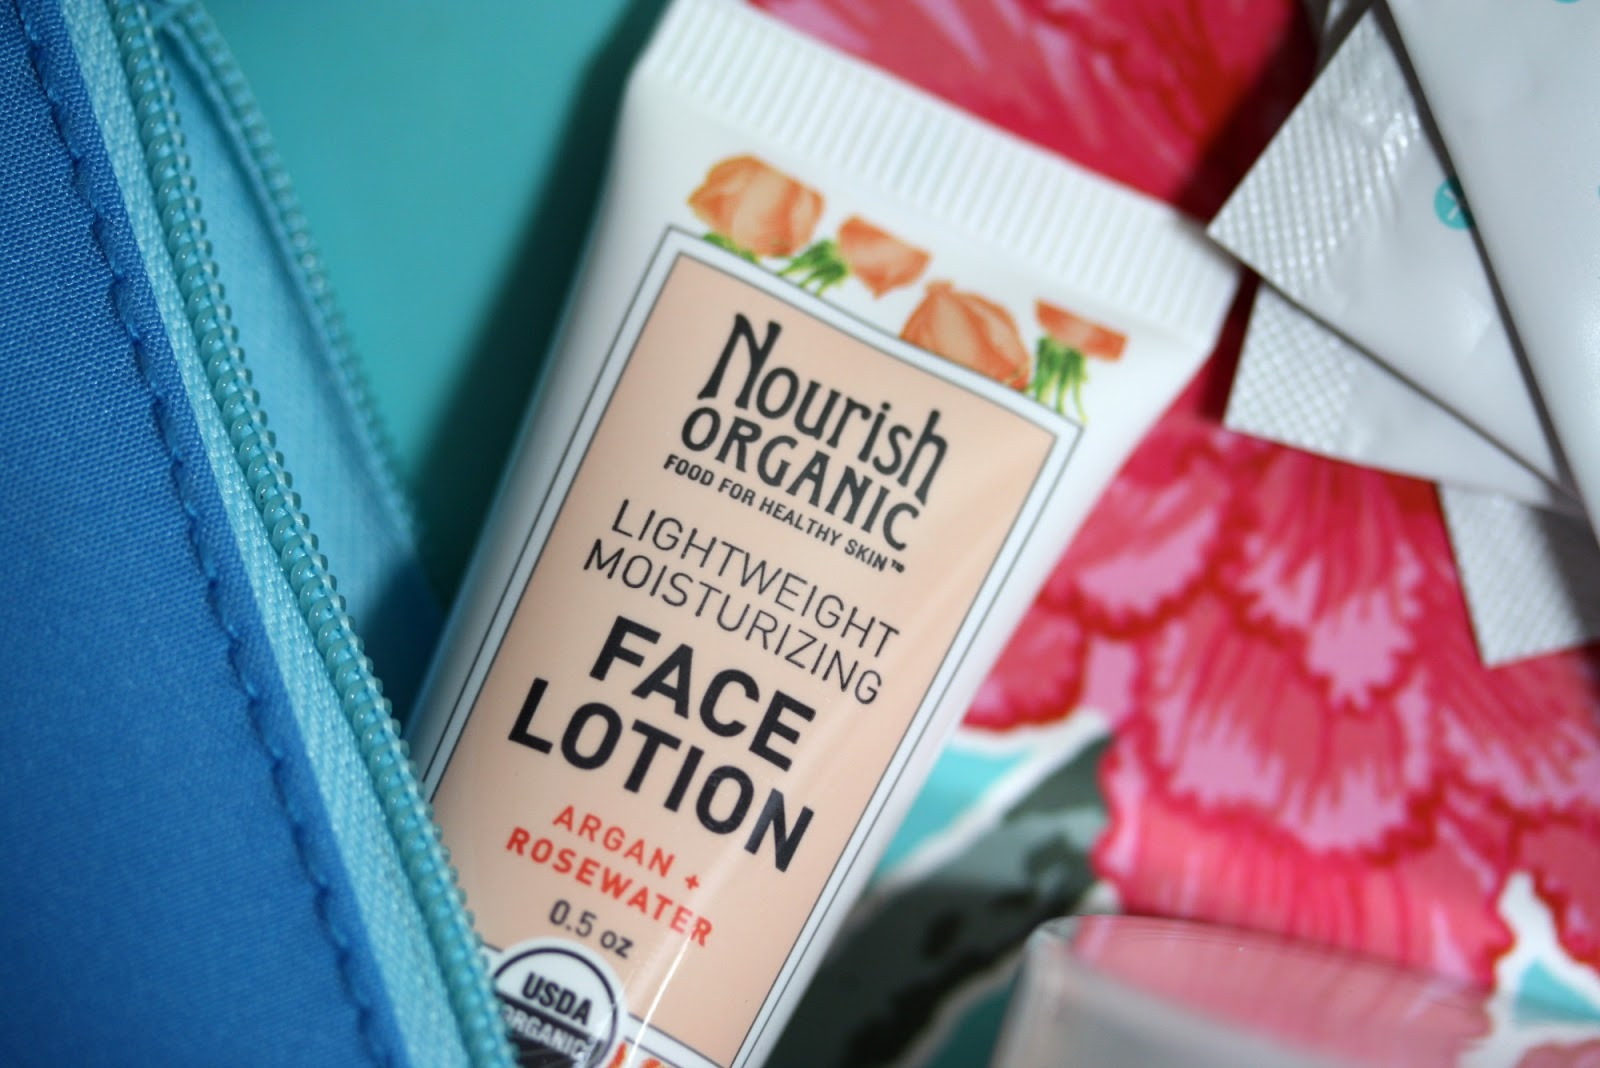 Ipsy Glam Bag January 2014 - First Impressions - Nourish Organic Lightweight Moisturizing Face Lotion with Argan + Rosewater | Manicurity.com